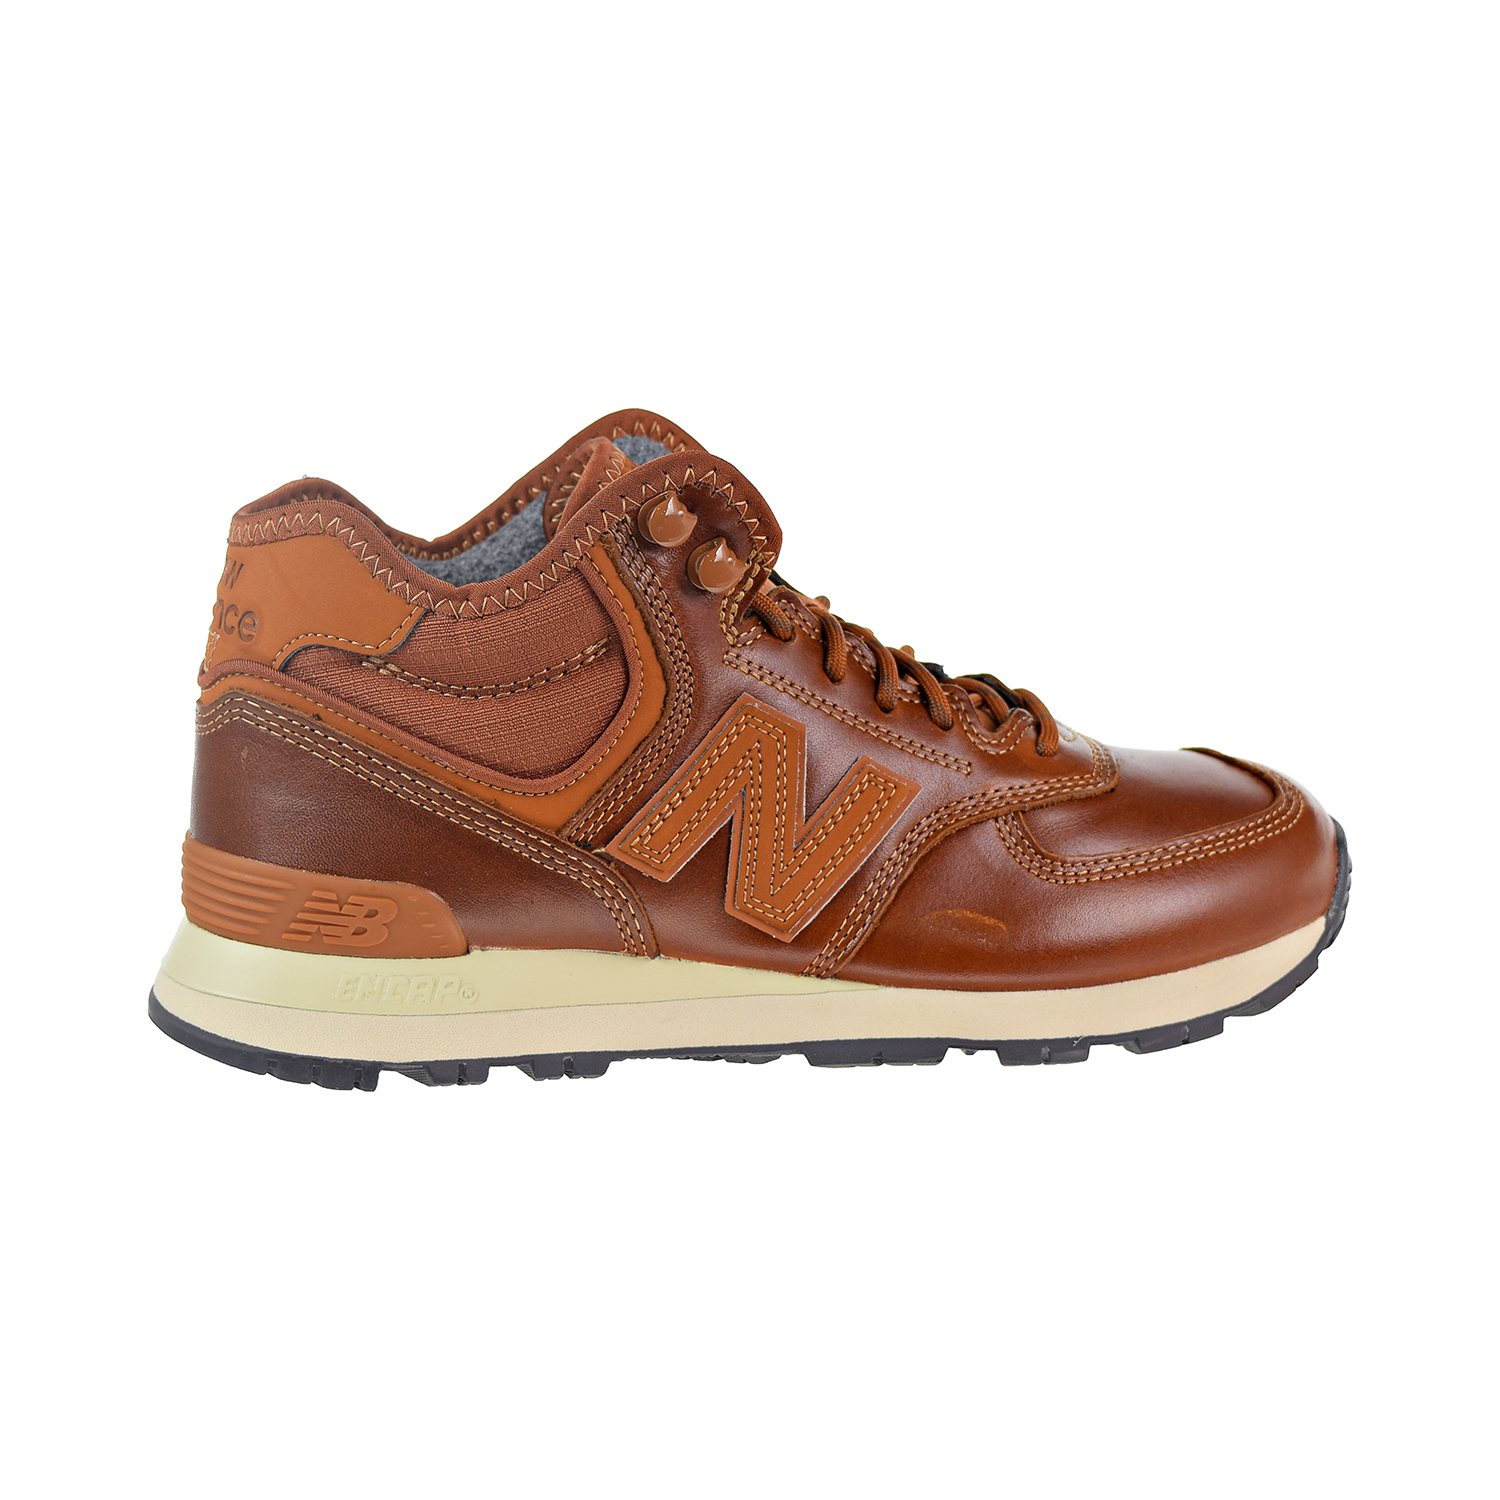 newest 0f318 036df Details about New Balance 574 Men's Shoes Brown MH574-OAD